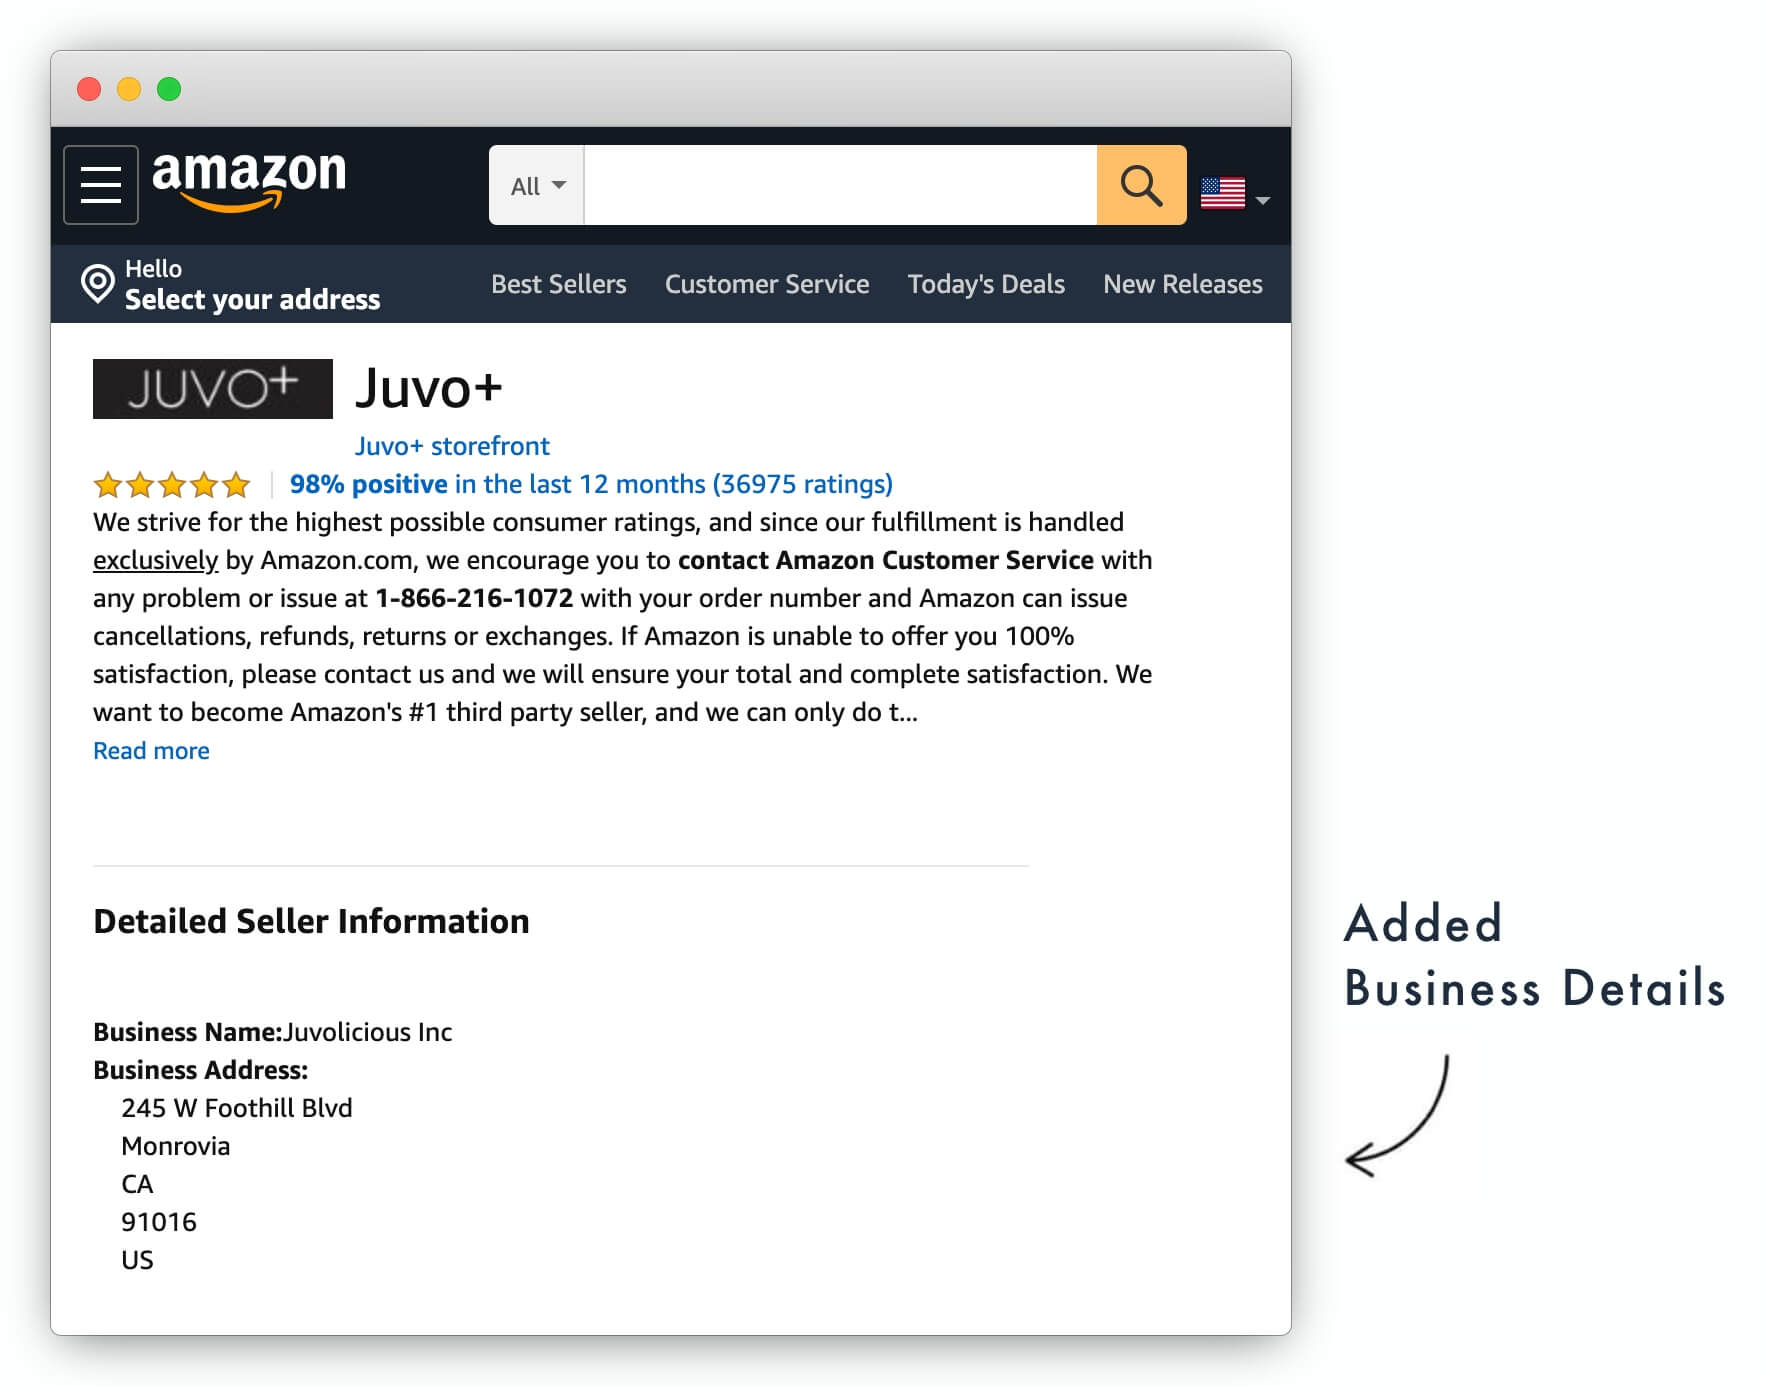 Amazon Seller Profile with Business Name and Address